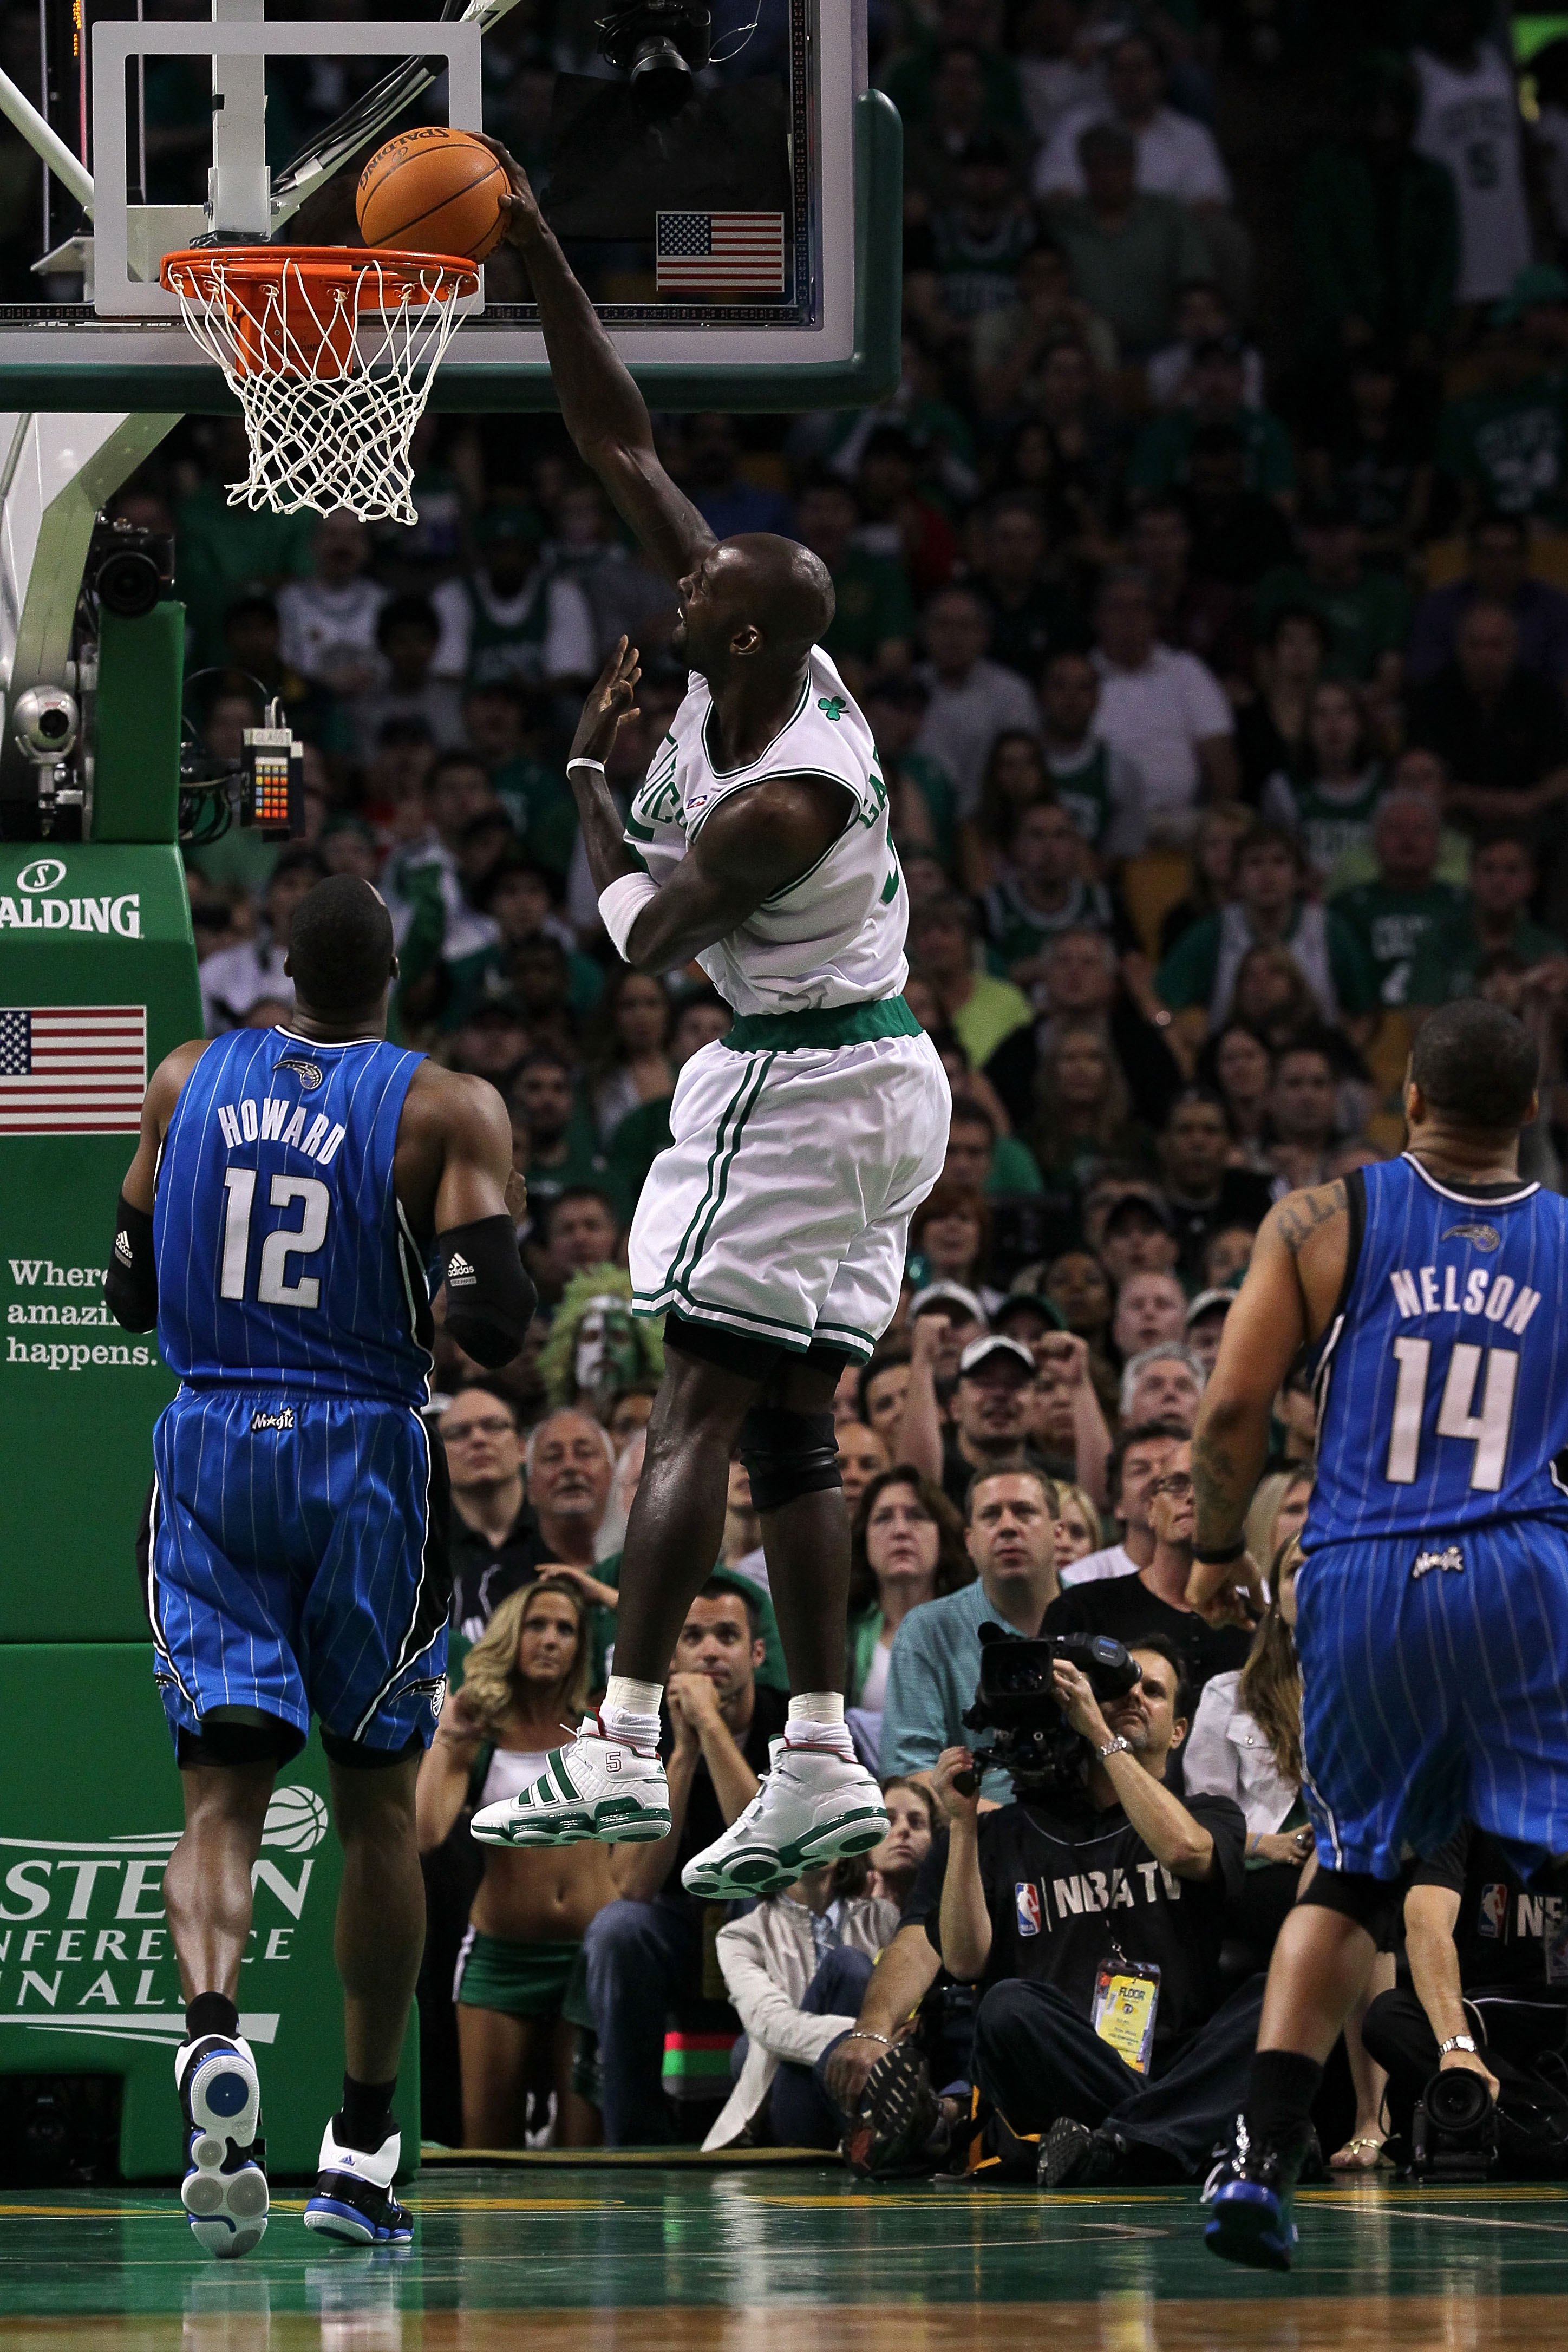 BOSTON - MAY 28:  Kevin Garnett #5 of the Boston Celtics dunks against Dwight Howard #12 of the Orlando Magic in Game Six of the Eastern Conference Finals during the 2010 NBA Playoffs at TD Garden on May 28, 2010 in Boston, Massachusetts.  NOTE TO USER: U